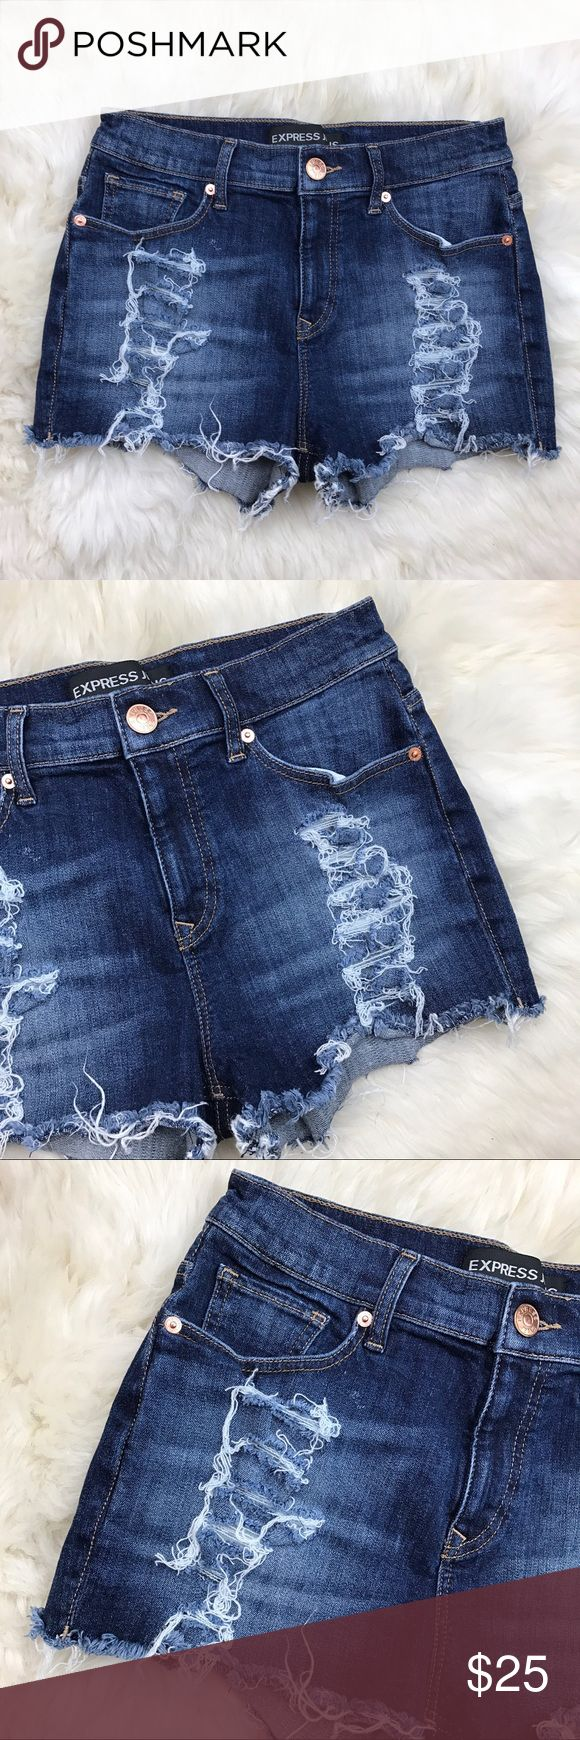 "Express Distressed Frayed Boyfriend Denim Shorts In excellent used condition. Materials are 98% cotton & 2% spandex. Very stretchy.  Measurements are 11 1/2"" in length, 11"" front rise, 2"" inseam, & 14 1/2"" across waist. 5 pockets.  Zipper on front center with button closure. Fraying and distressing on front & back. ❌NO TRADES OR PAYPAL❌ Express Shorts Jean Shorts"